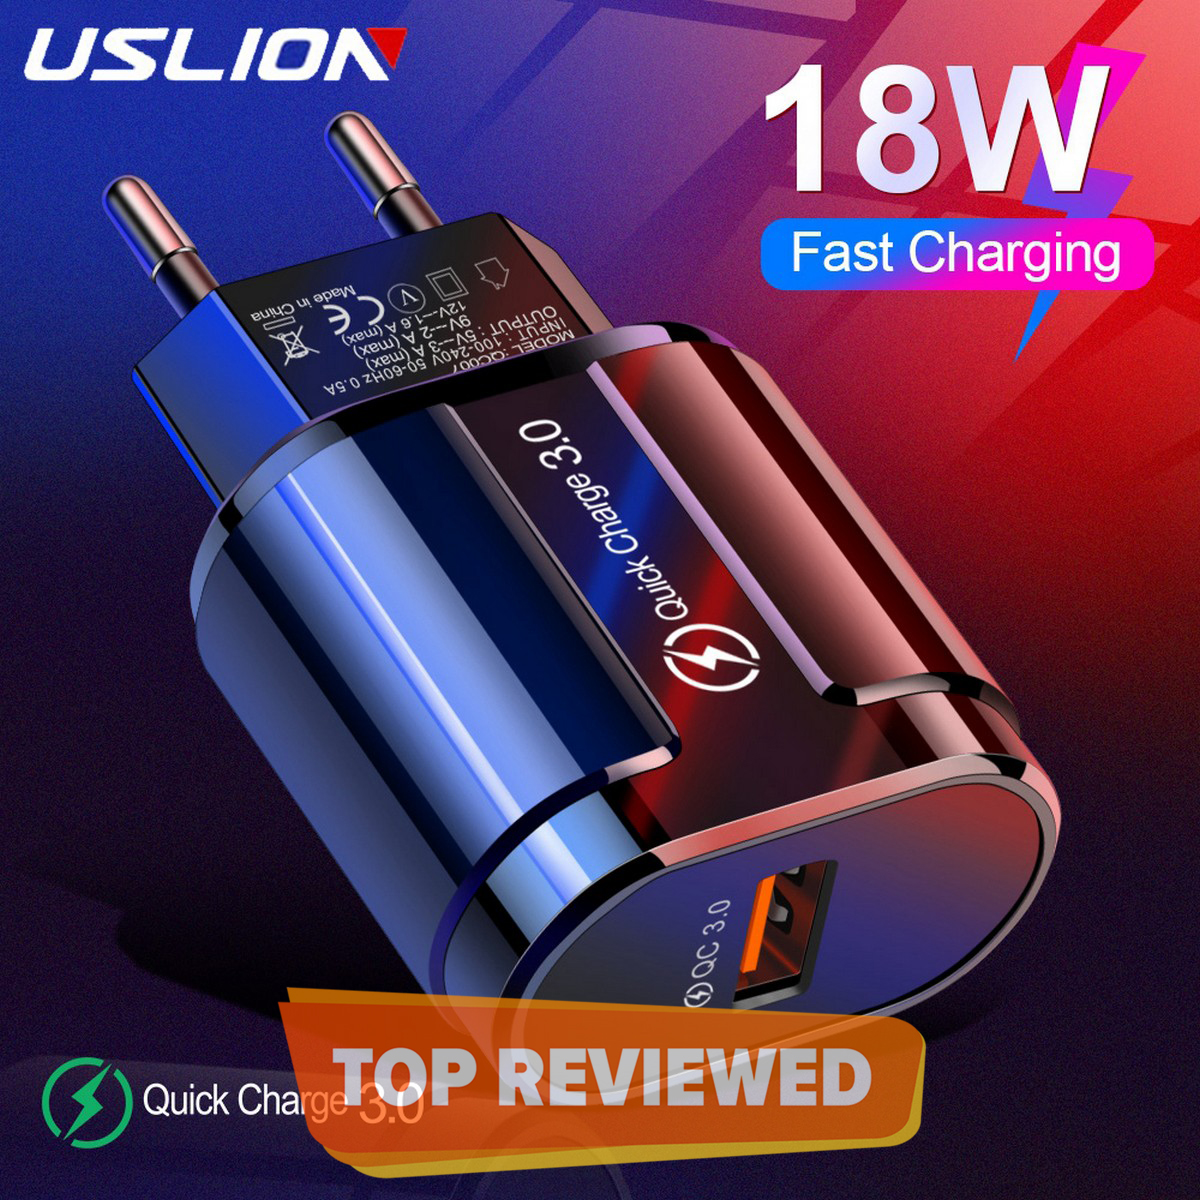 USLION Qualcomm QC 3.0 Fast Charger 3A 18W Quick Charge For All Brands / For Samsung / Iphone / HTC / Infinix / Xiaomi / Huawei / Nokia / Lenovo - Black